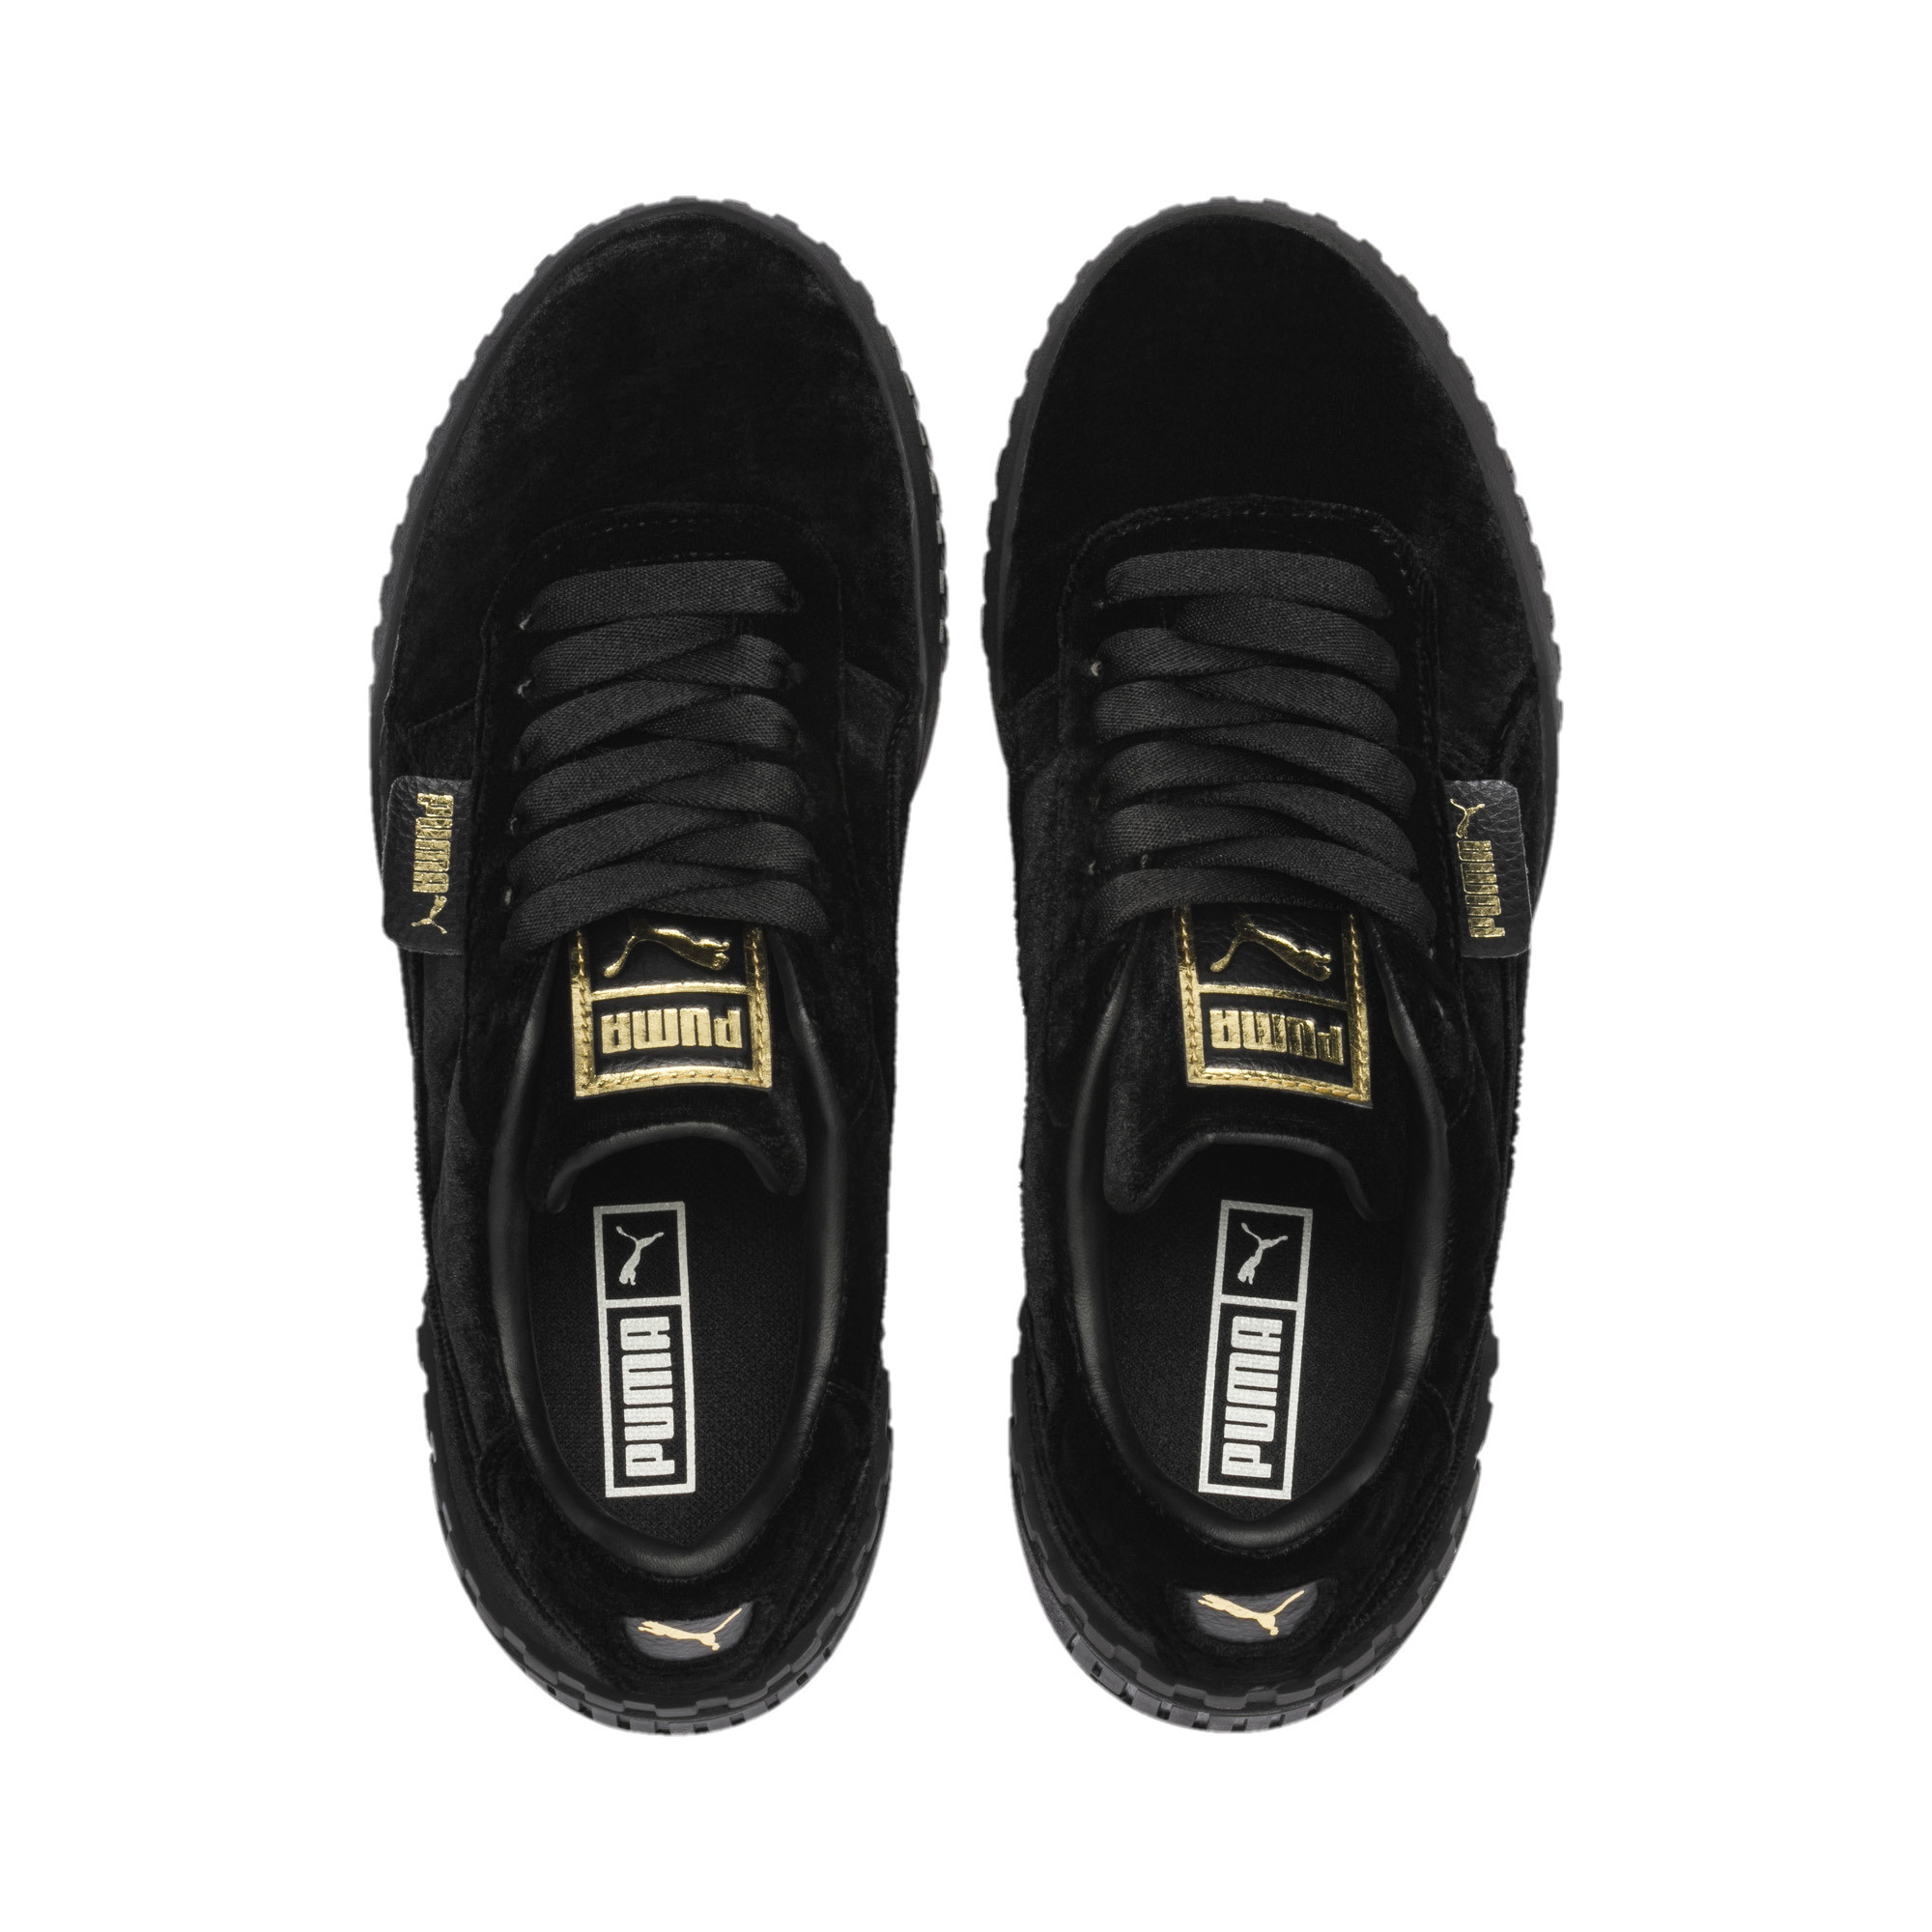 PUMA-Cali-Velvet-Women-039-s-Sneakers-Women-Shoe-Evolution thumbnail 7